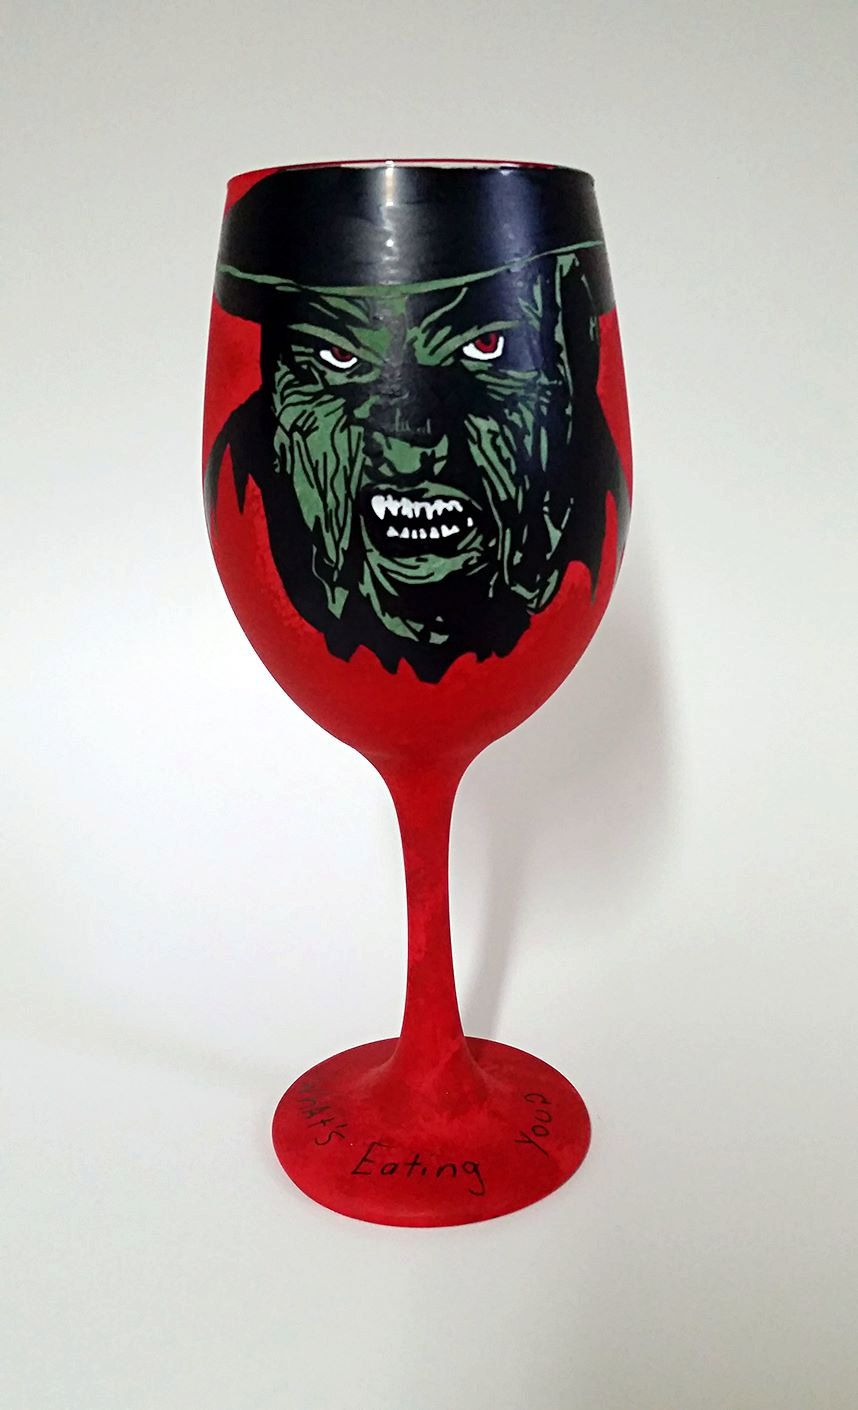 Horror Movie Villain Inspired Hand Painted Wine Glass Etsy Hand Painted Wine Glass Painted Wine Glass Hand Painted Wine Glasses